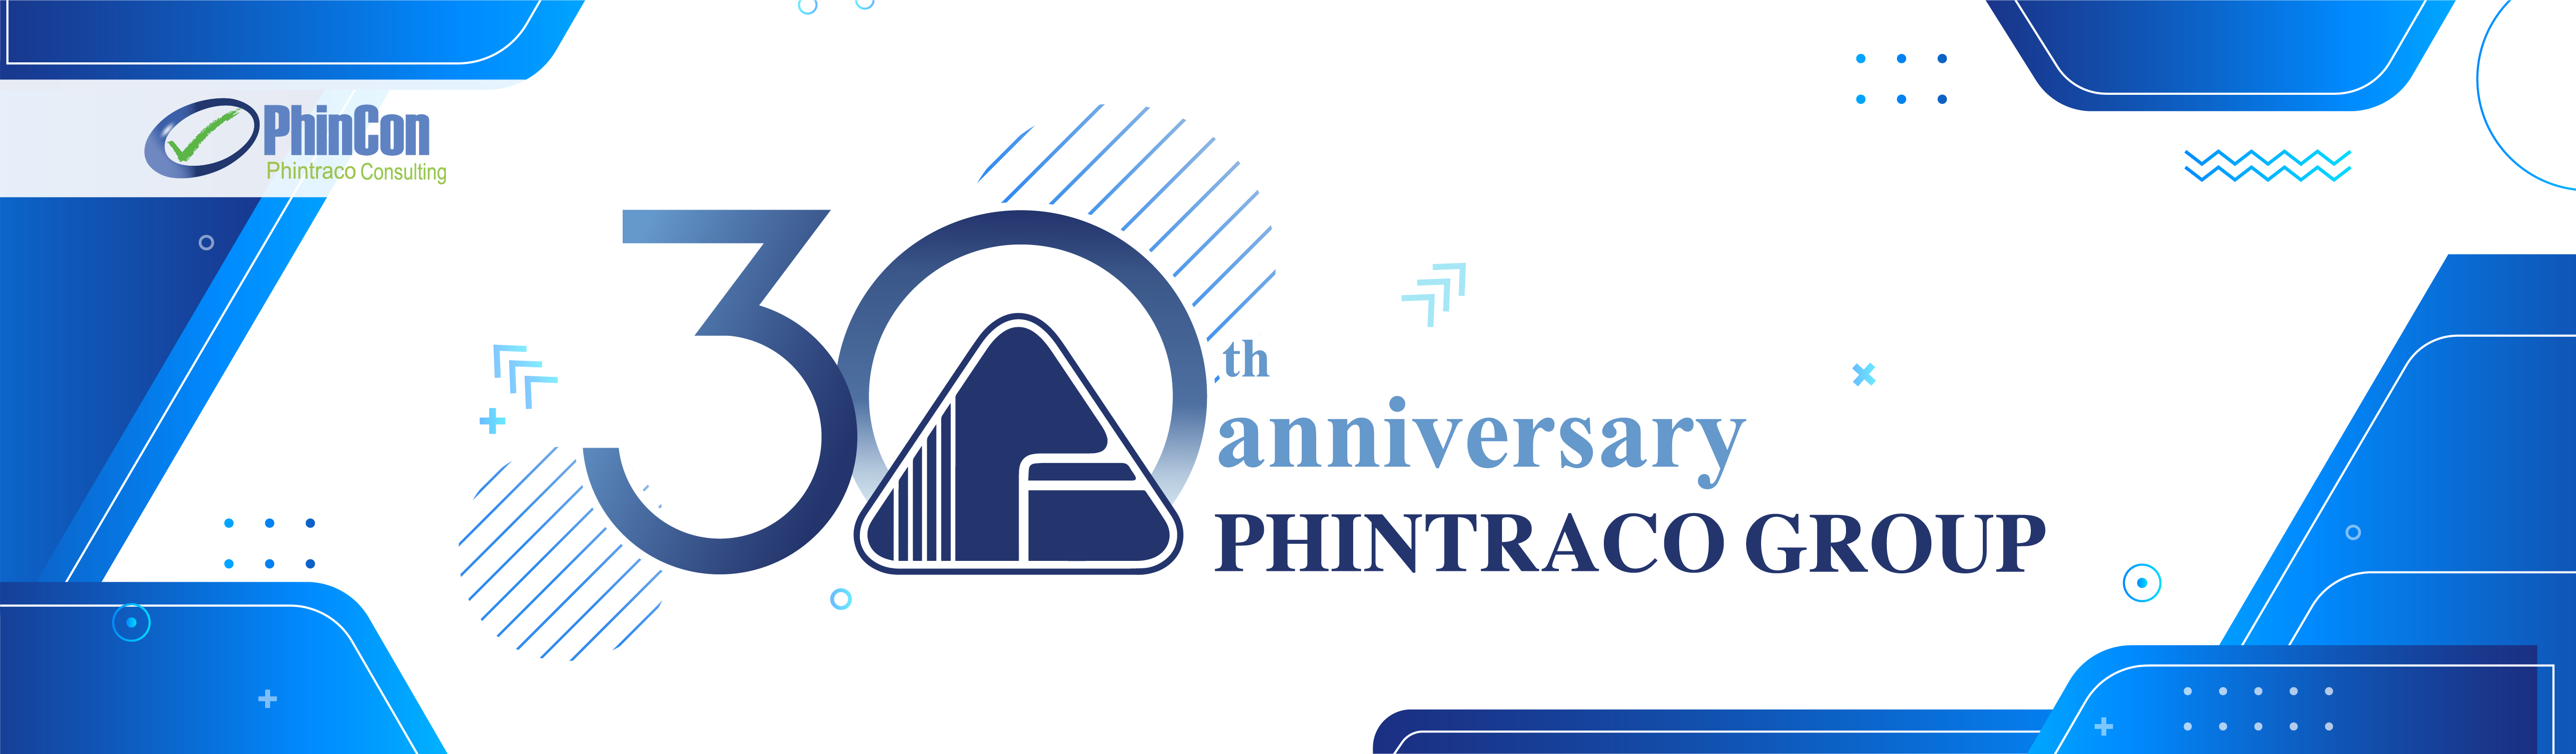 Celebrating 30th Anniversary, Phintraco Group Turns Challenges into New Opportunities to Innovate